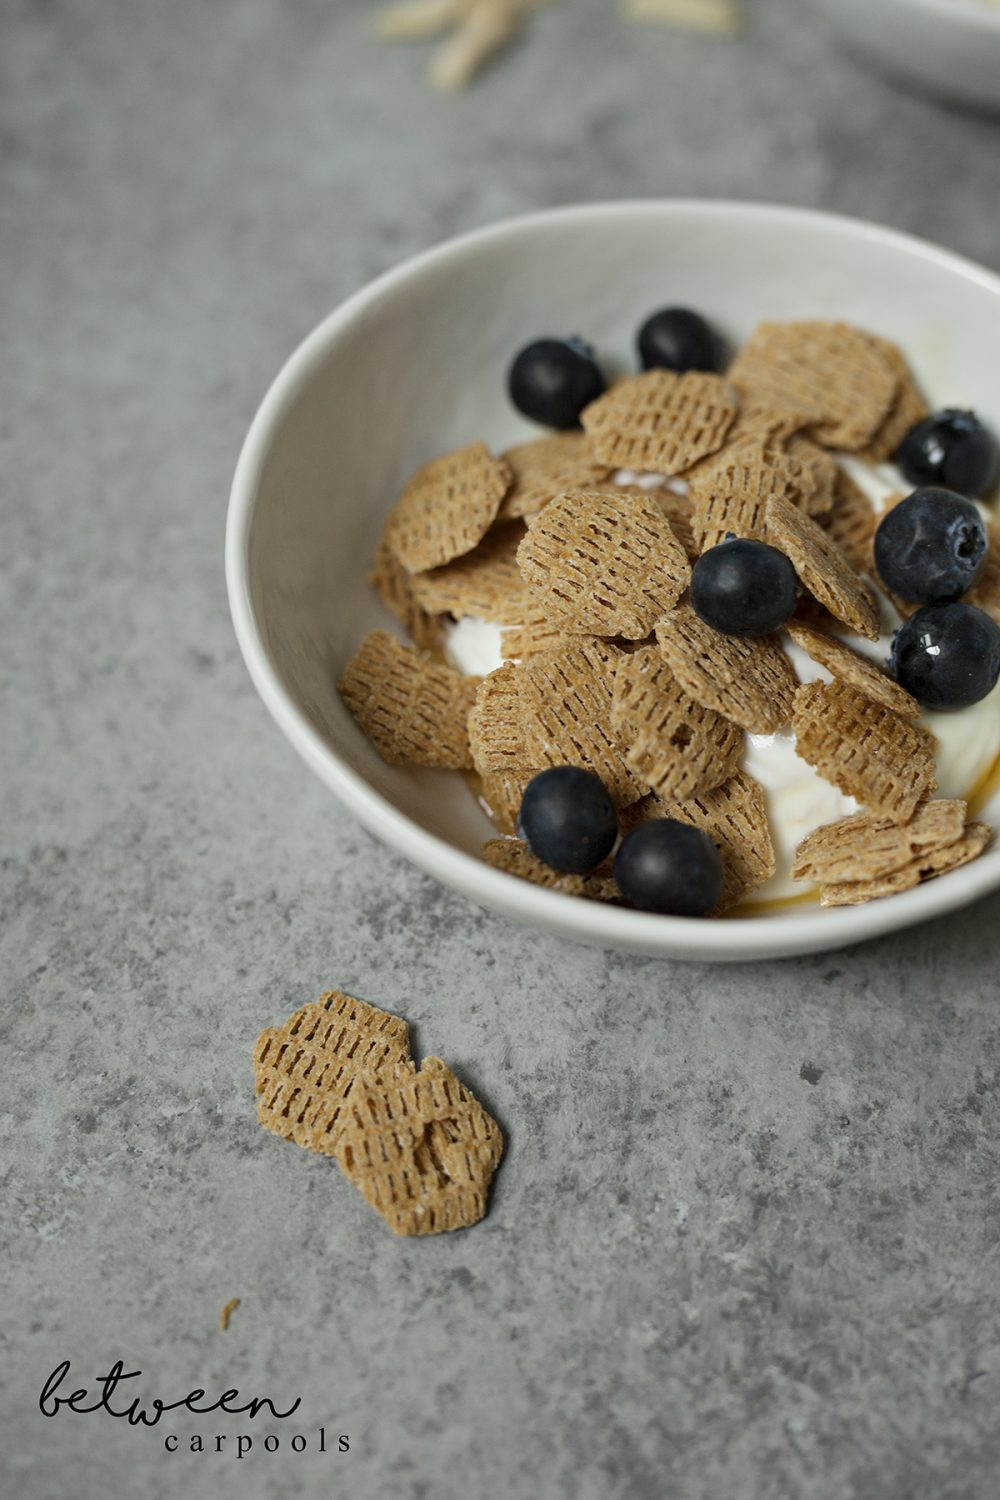 Pile on the fruit, a drizzle of sweetener, and add a handful of crunch (choose one of each!), and you've got yourself a perfect breakfast. Packed with protein, vitamins and flavor, it's the perfect start to any day.